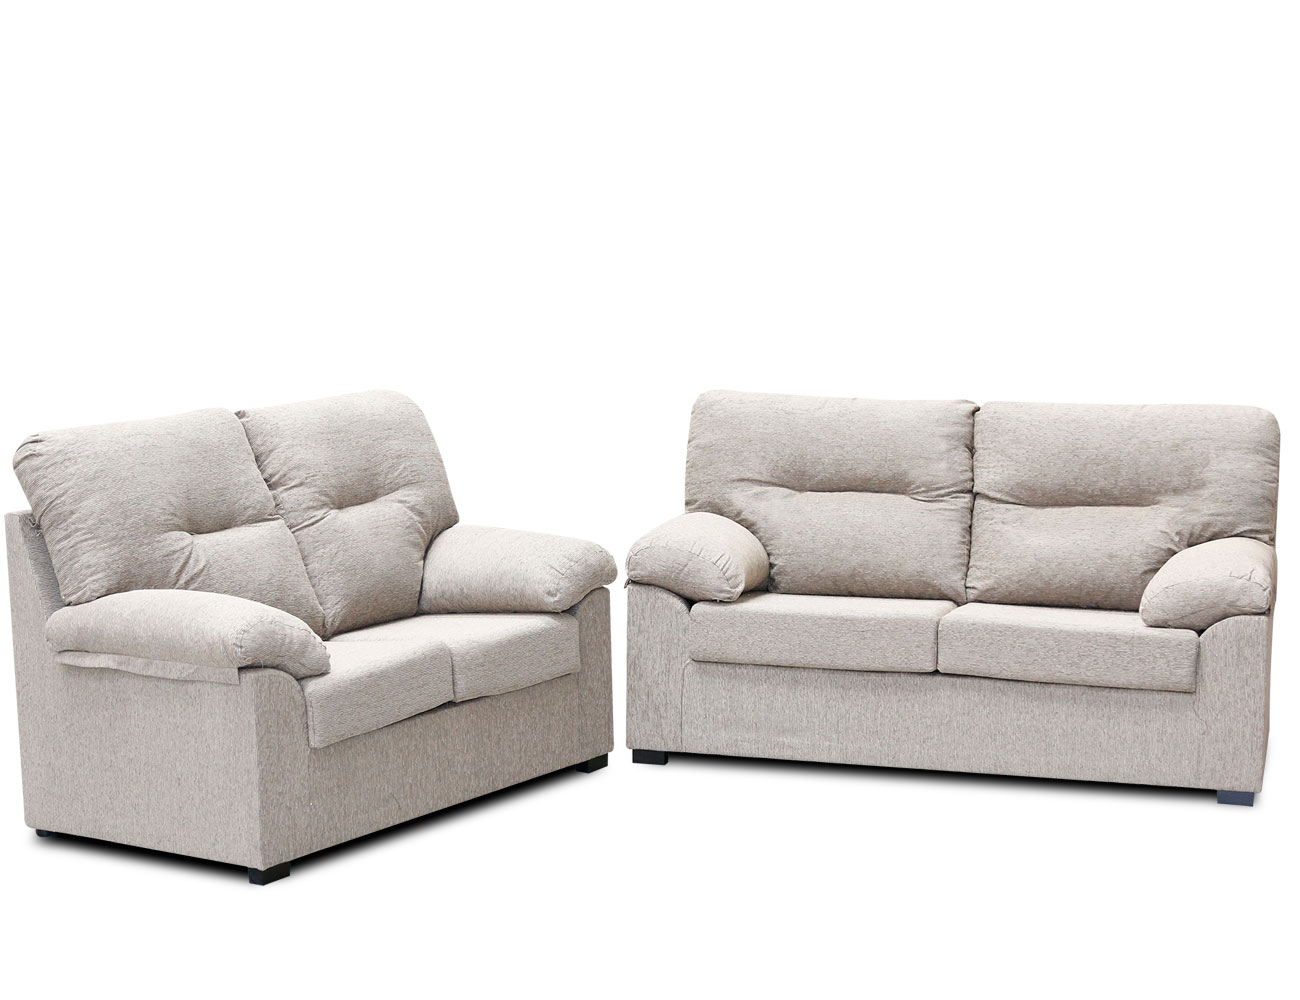 Conjunto de sof 3 2 plazas factory del mueble utrera for Sofa 2 plazas barato